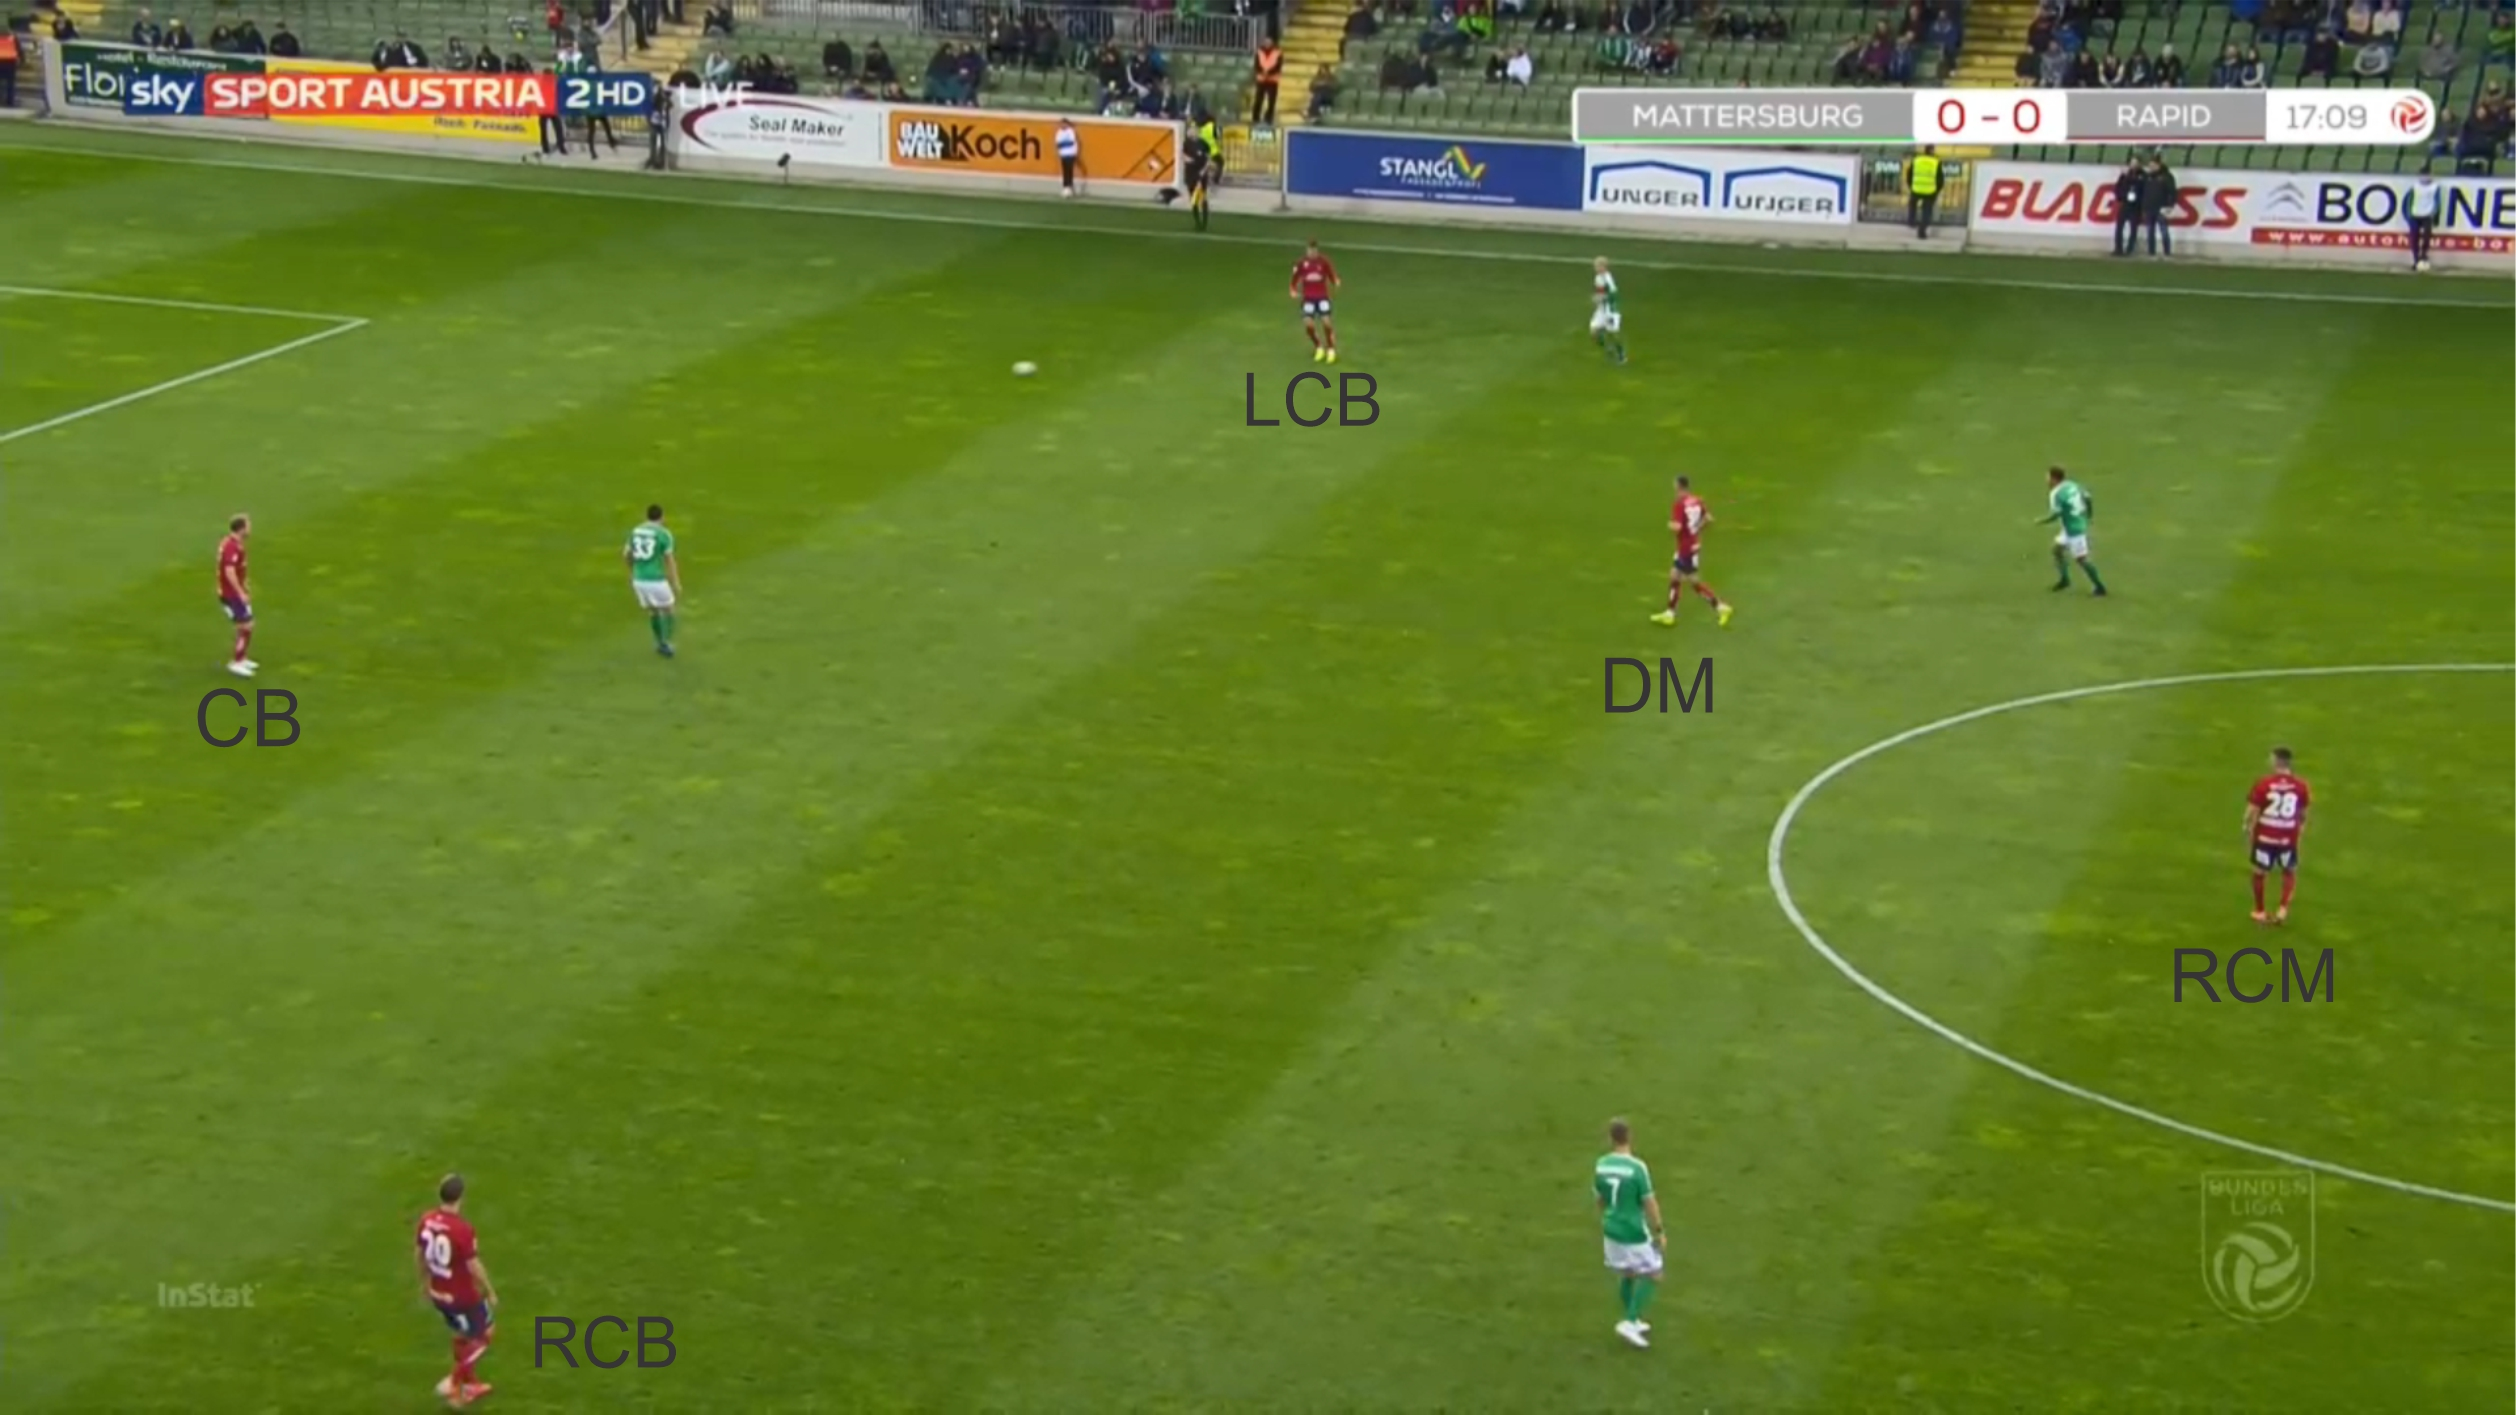 Dietmar Kuhbauer at Rapid Wien 2019/20 - tactical analysis tactics